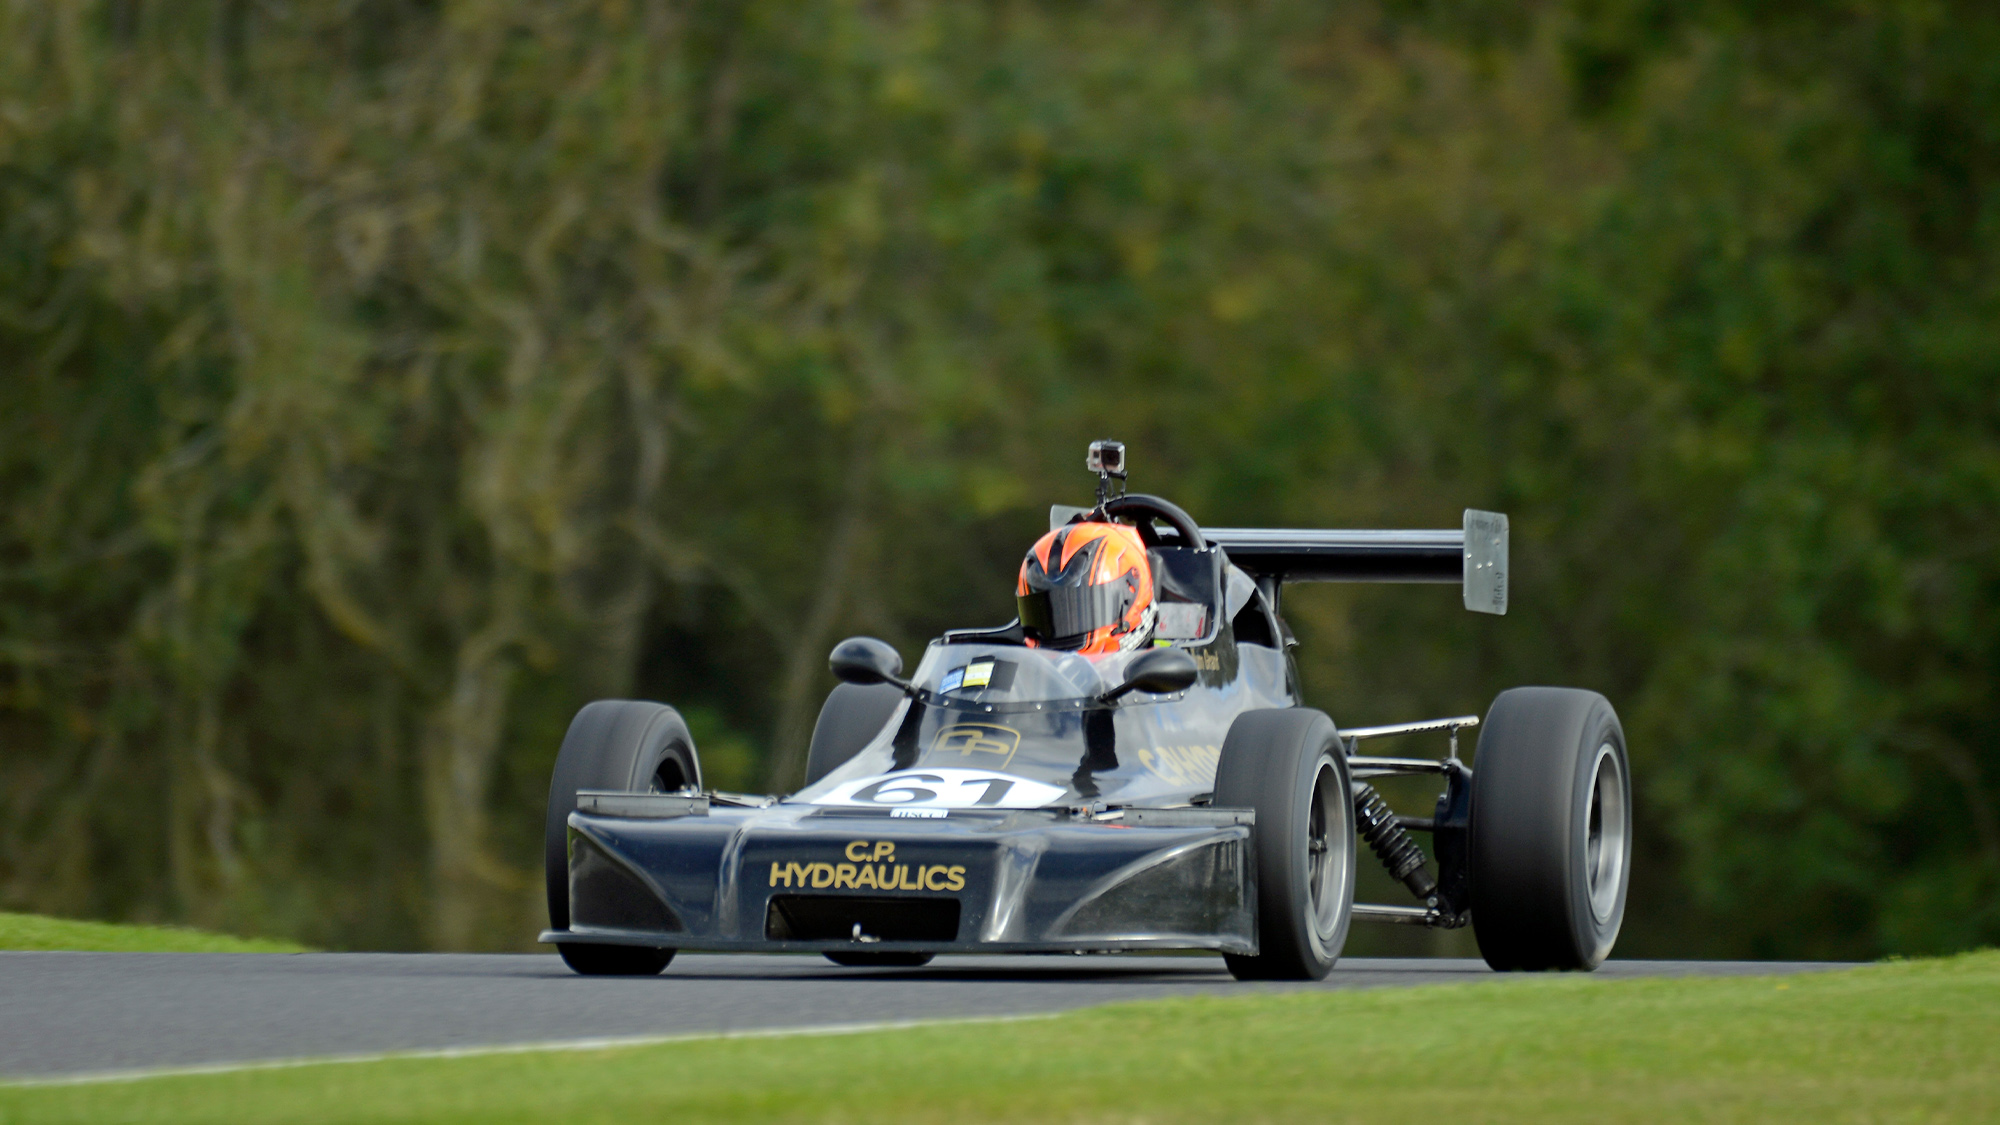 Callum Grant's Delta T78 in the September 2020 Wolds Trophy meeting at Cadwell Park